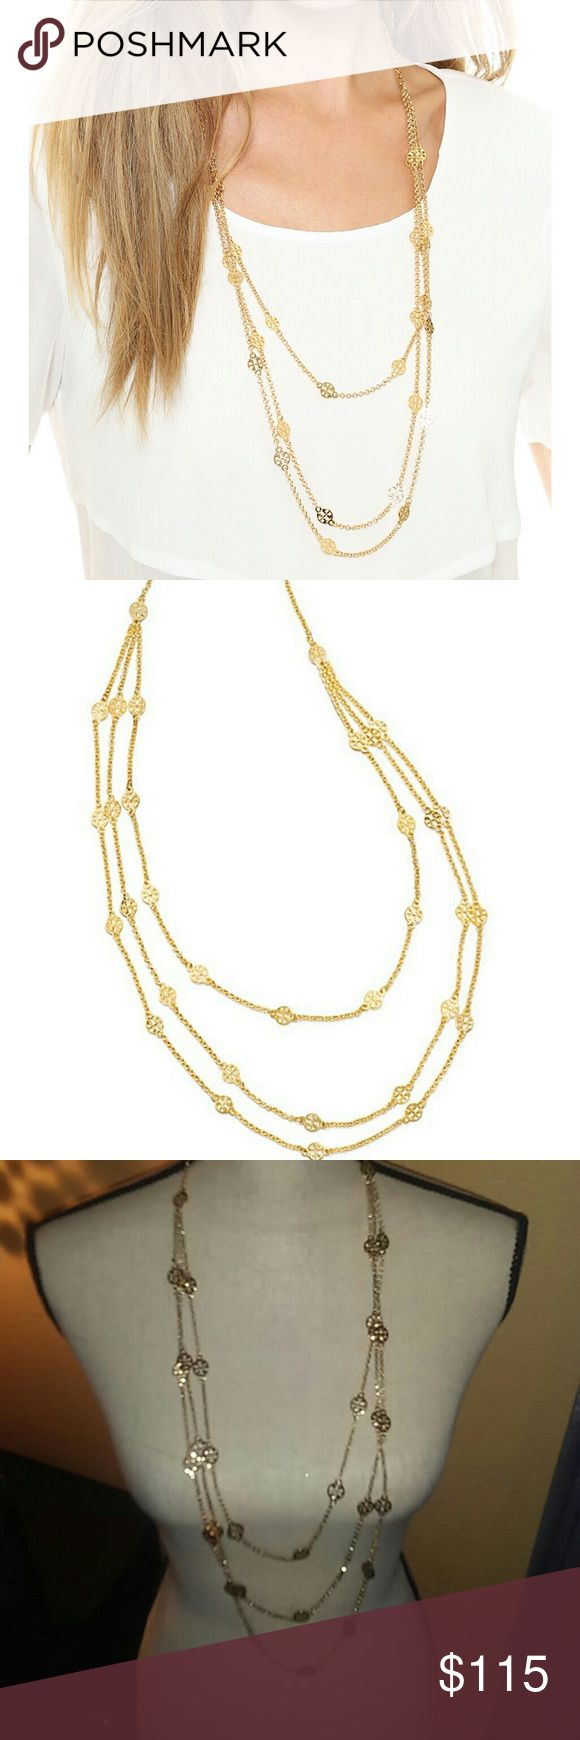 "NWOT Tory Burch Three-Strand Gold Plated Necklace Gorgeous...Perfect...Everything! These are the words that describe this NWOT Authentic Tory Burch Necklace. This necklace is truly stunning in person. Brand New, no tags or dustbag  This is Tory Burch take on the by-the-yard necklace features three draped strands. 16-karat yellow gold plate.  Rolo chains with signature Tory Burch double-T logo stations. Lobster clasp. The three lengths measure: 26"", 32"", and 36"".   Exact same necklace on Saks…"